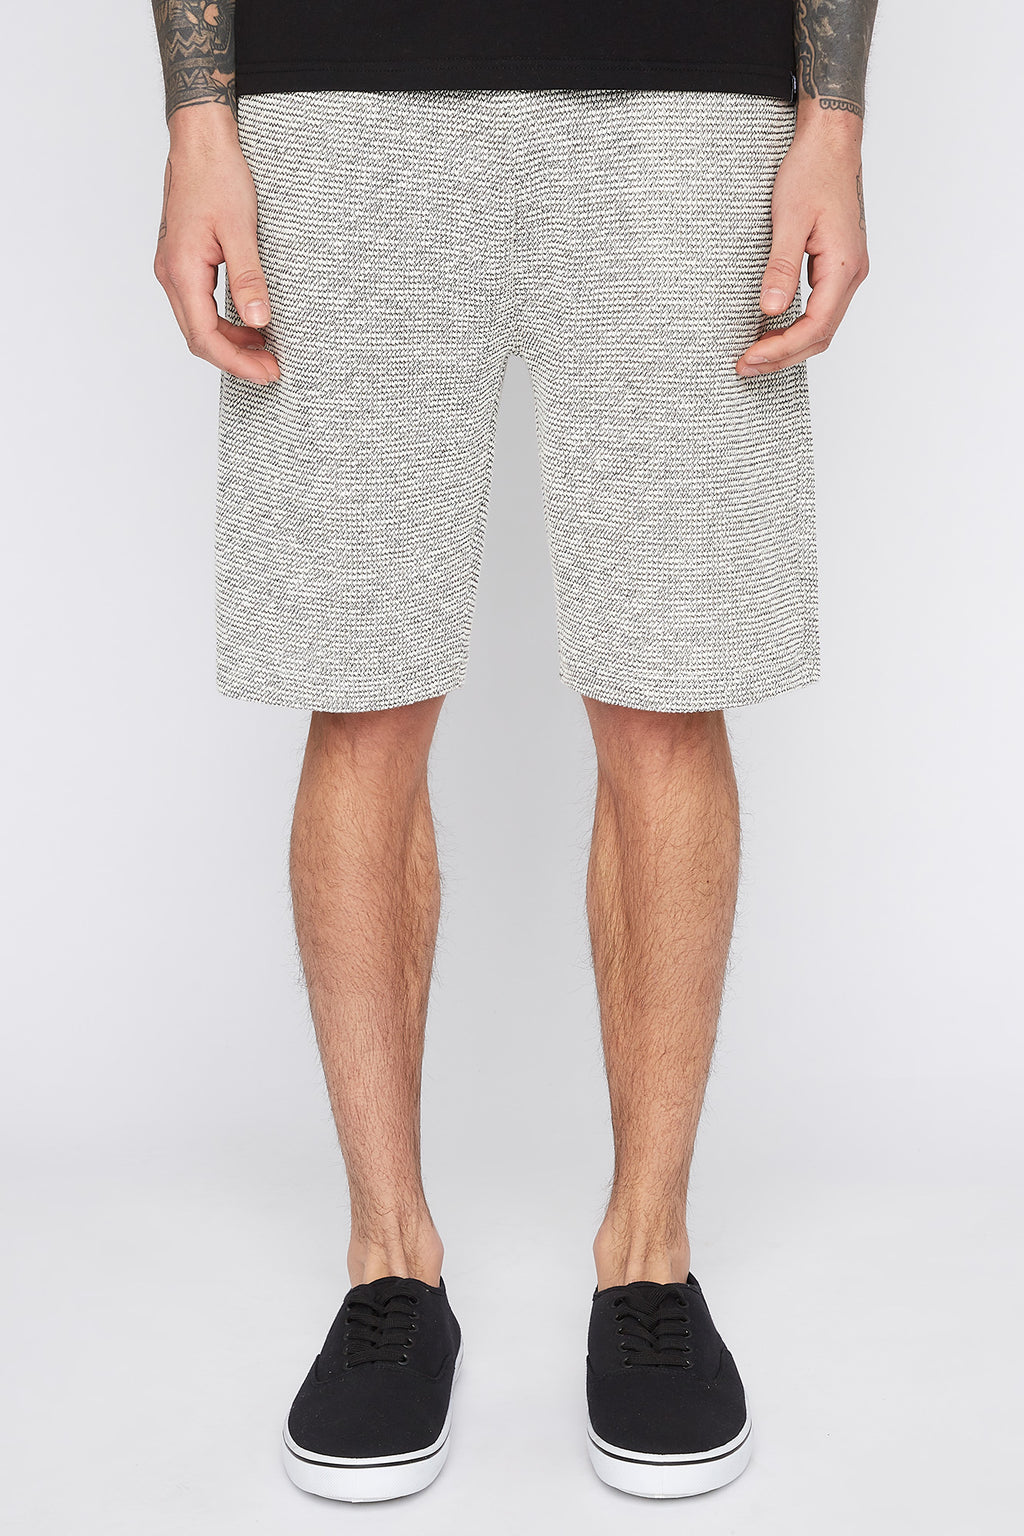 West49 Mens Textured Knit Shorts